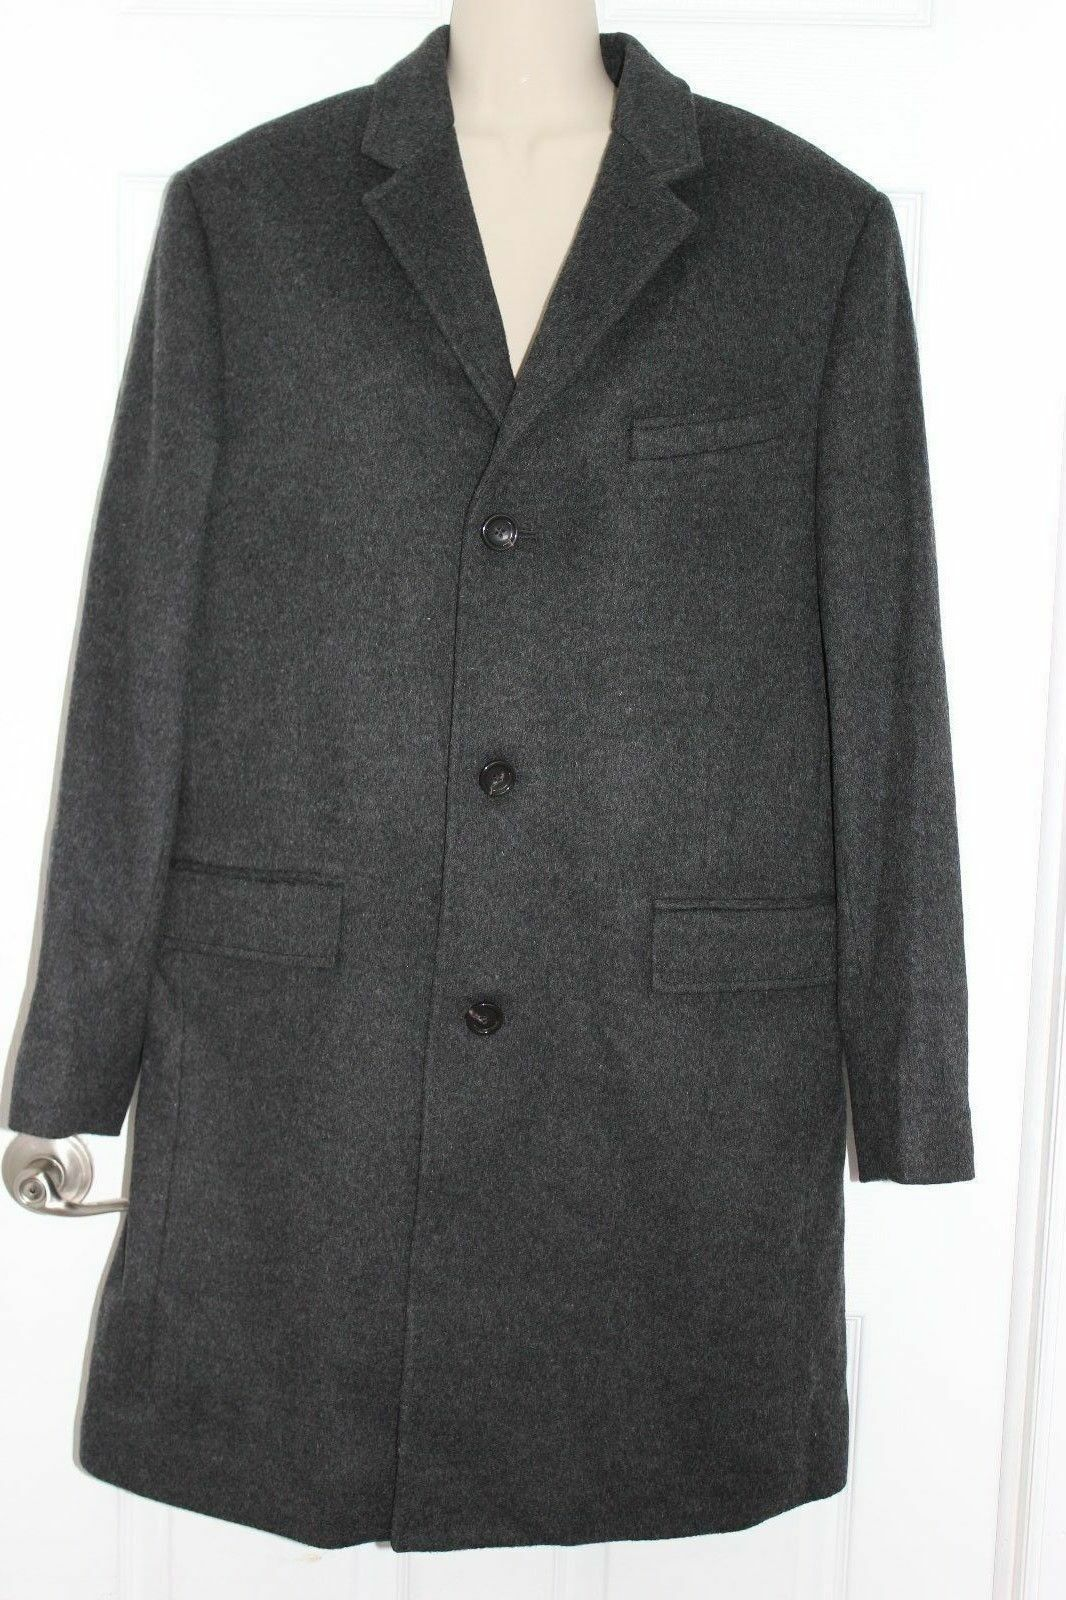 NEW JCrew  Crosby Topcoat in Italian Wool-Cashmere 40S Hthr Charcoal H2322